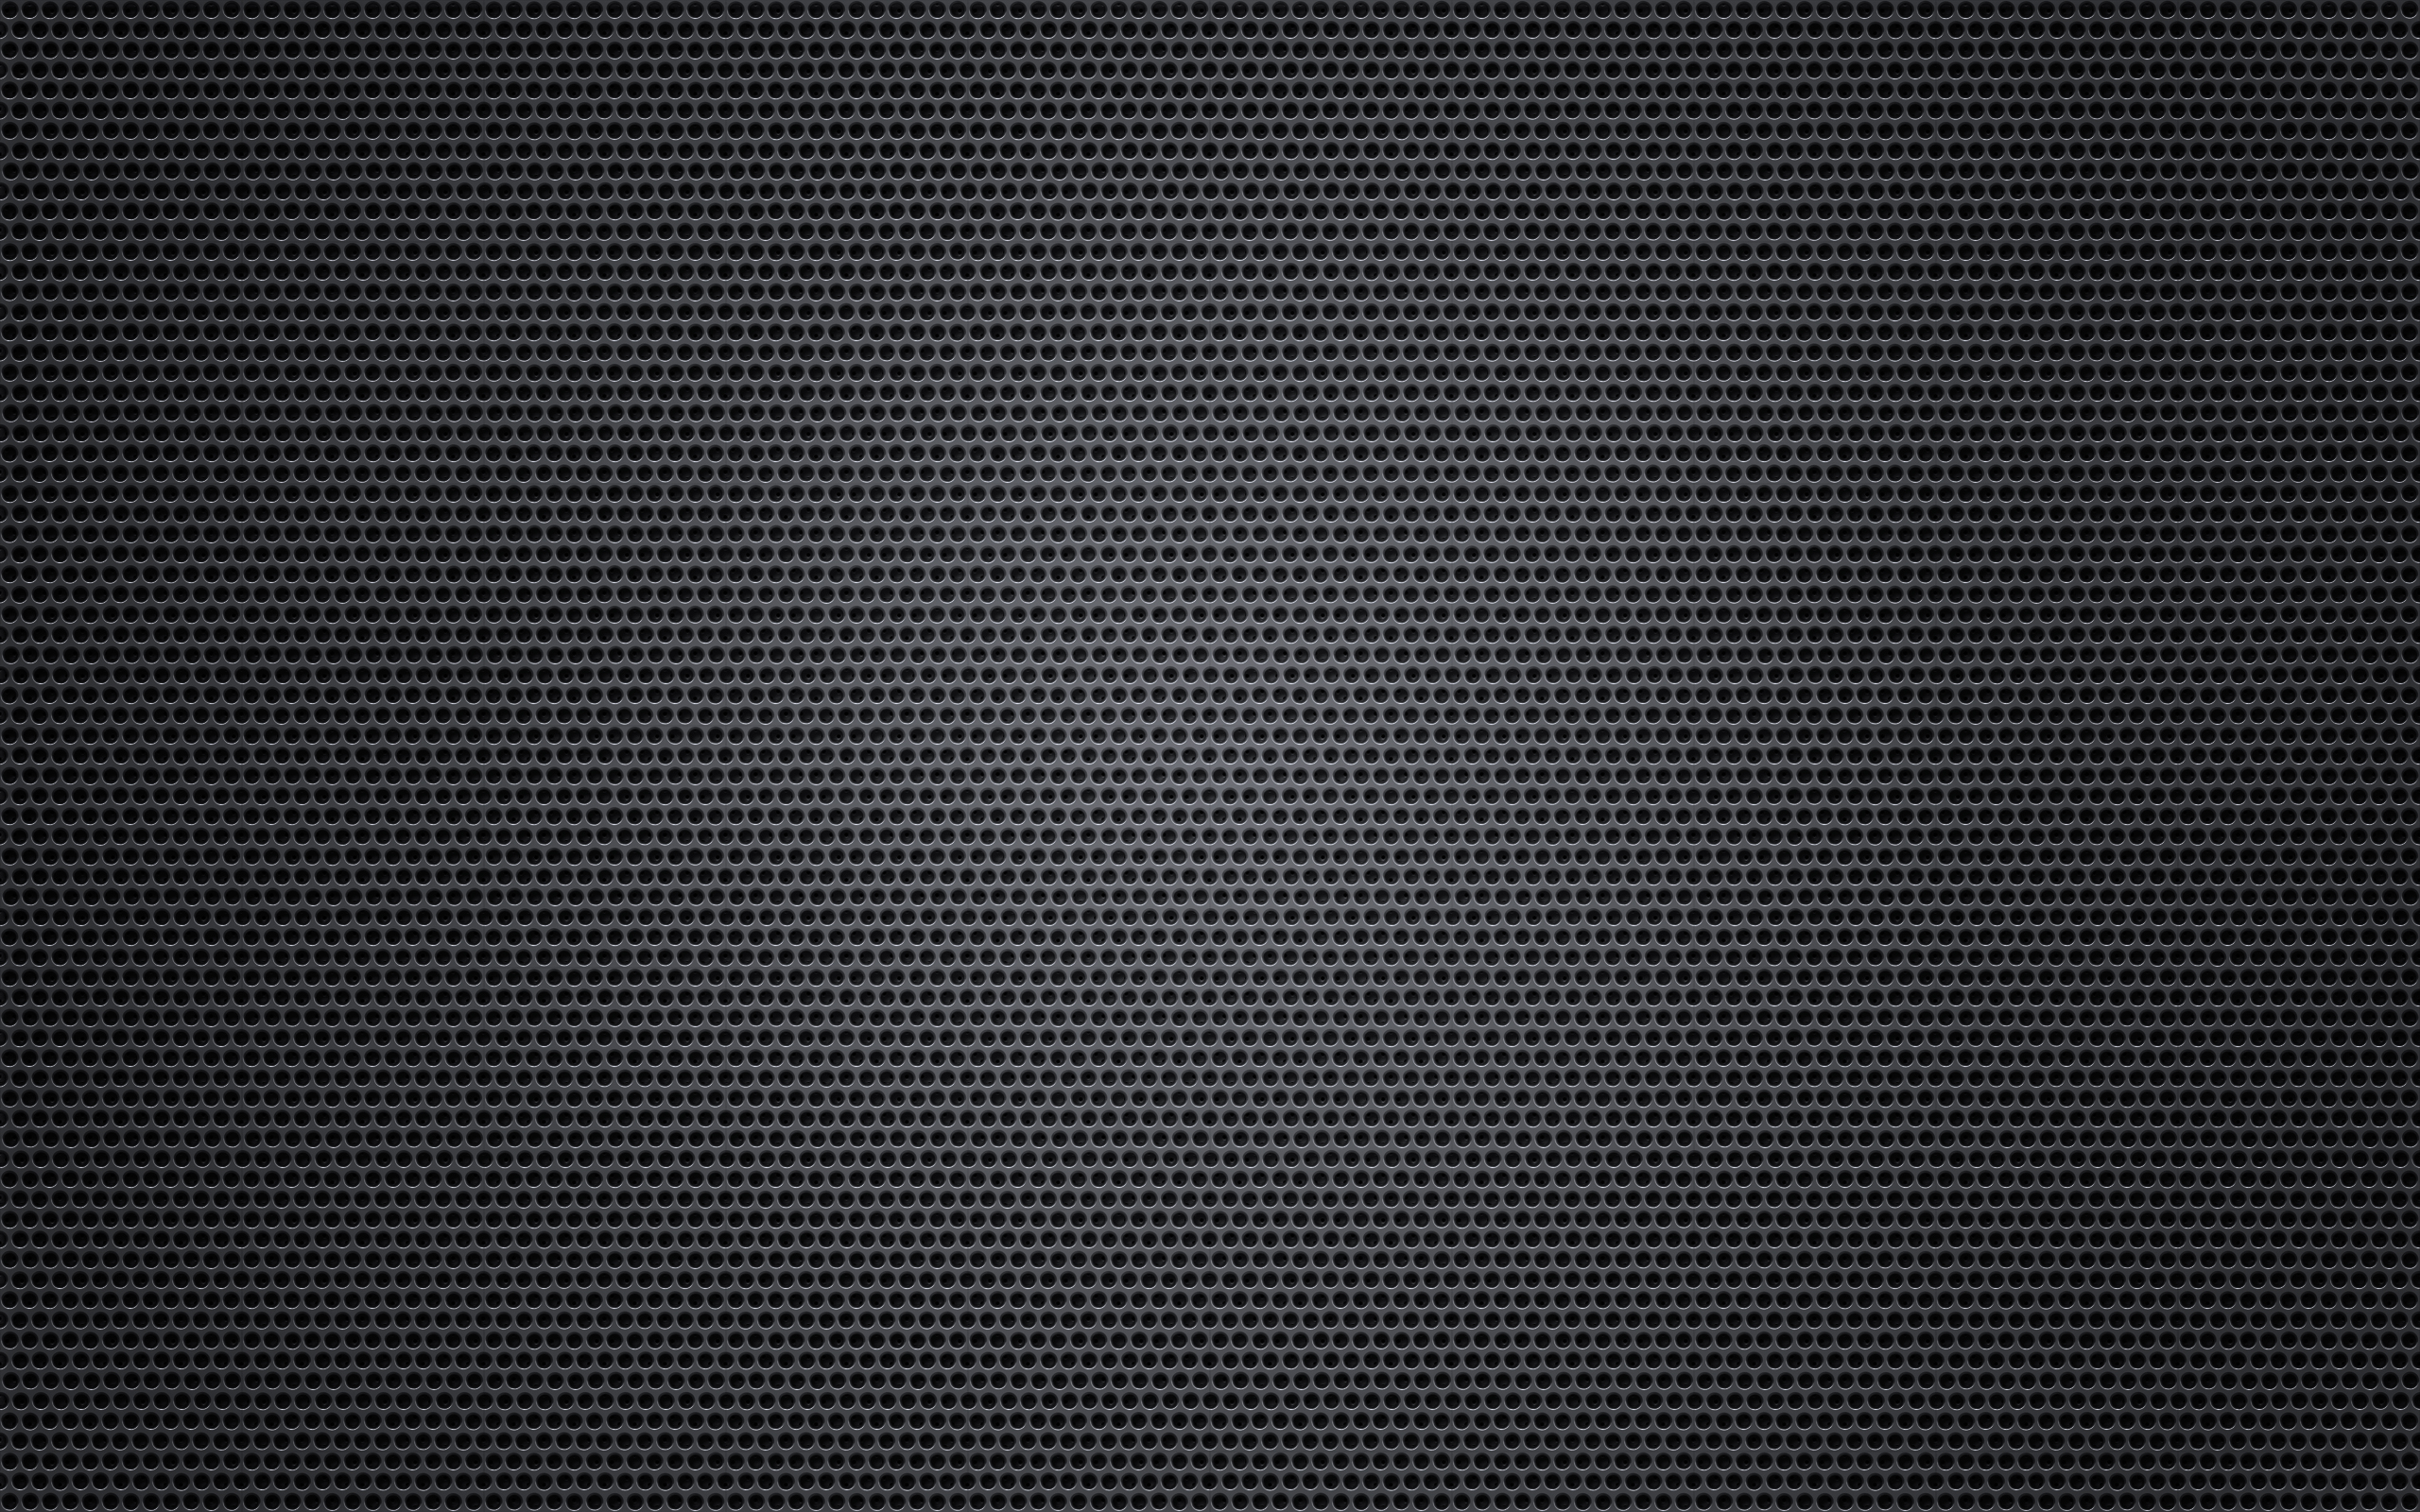 Round hole black metal ppt background #3814